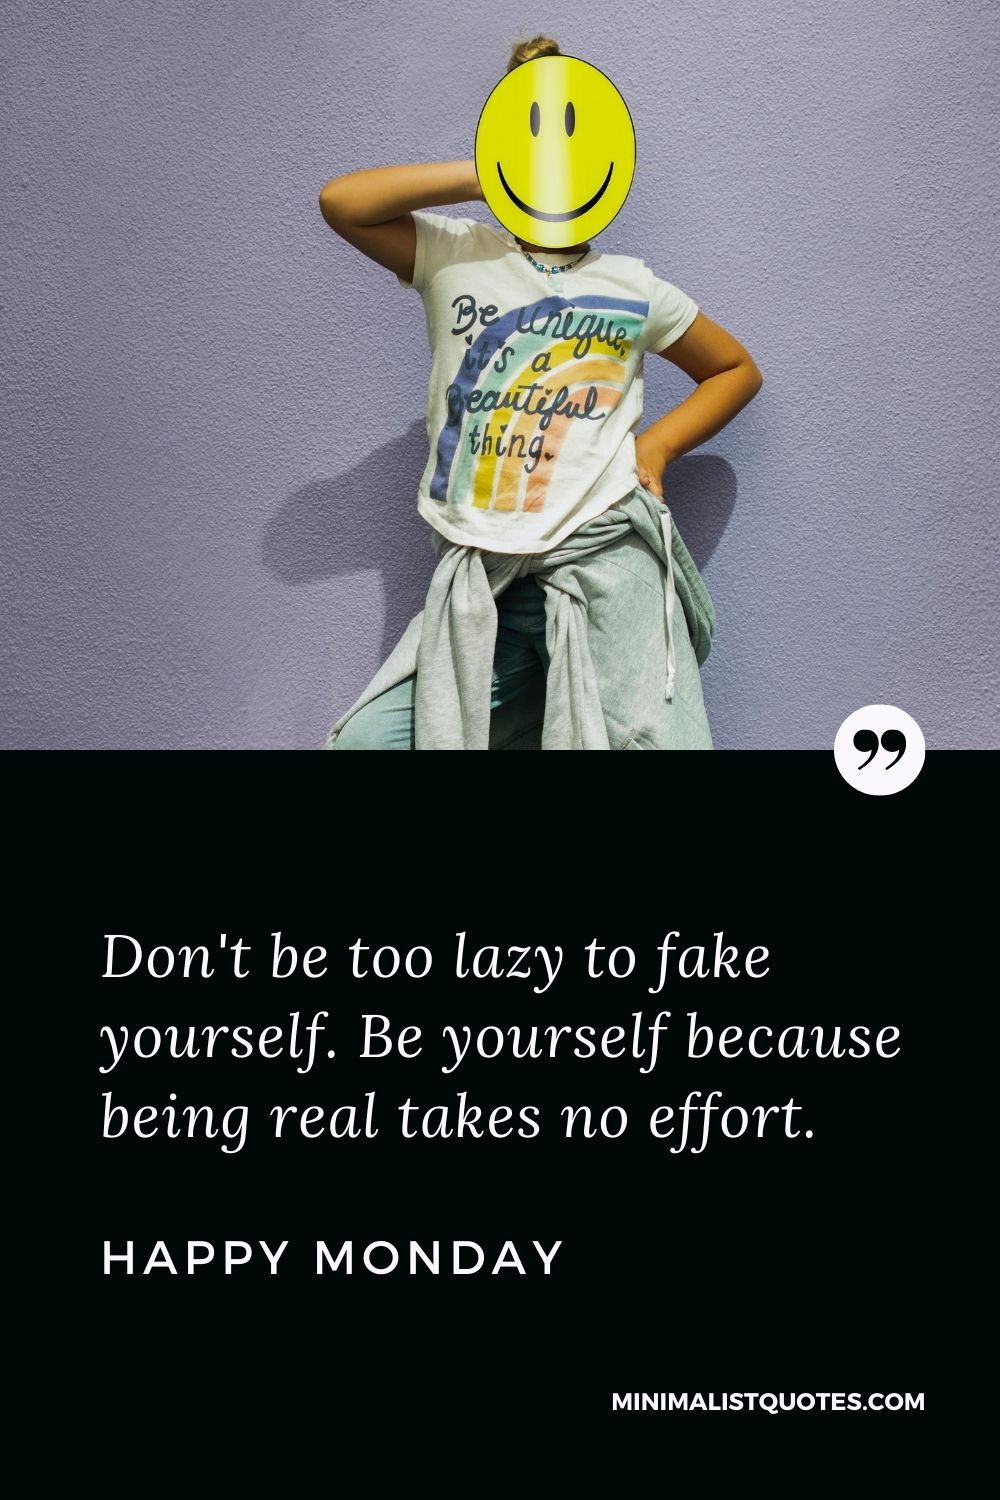 Monday Motivation Quote & Message with Image: Don't be too lazy to fake yourself. Be yourself because being real takes no effort. Happy Monday!